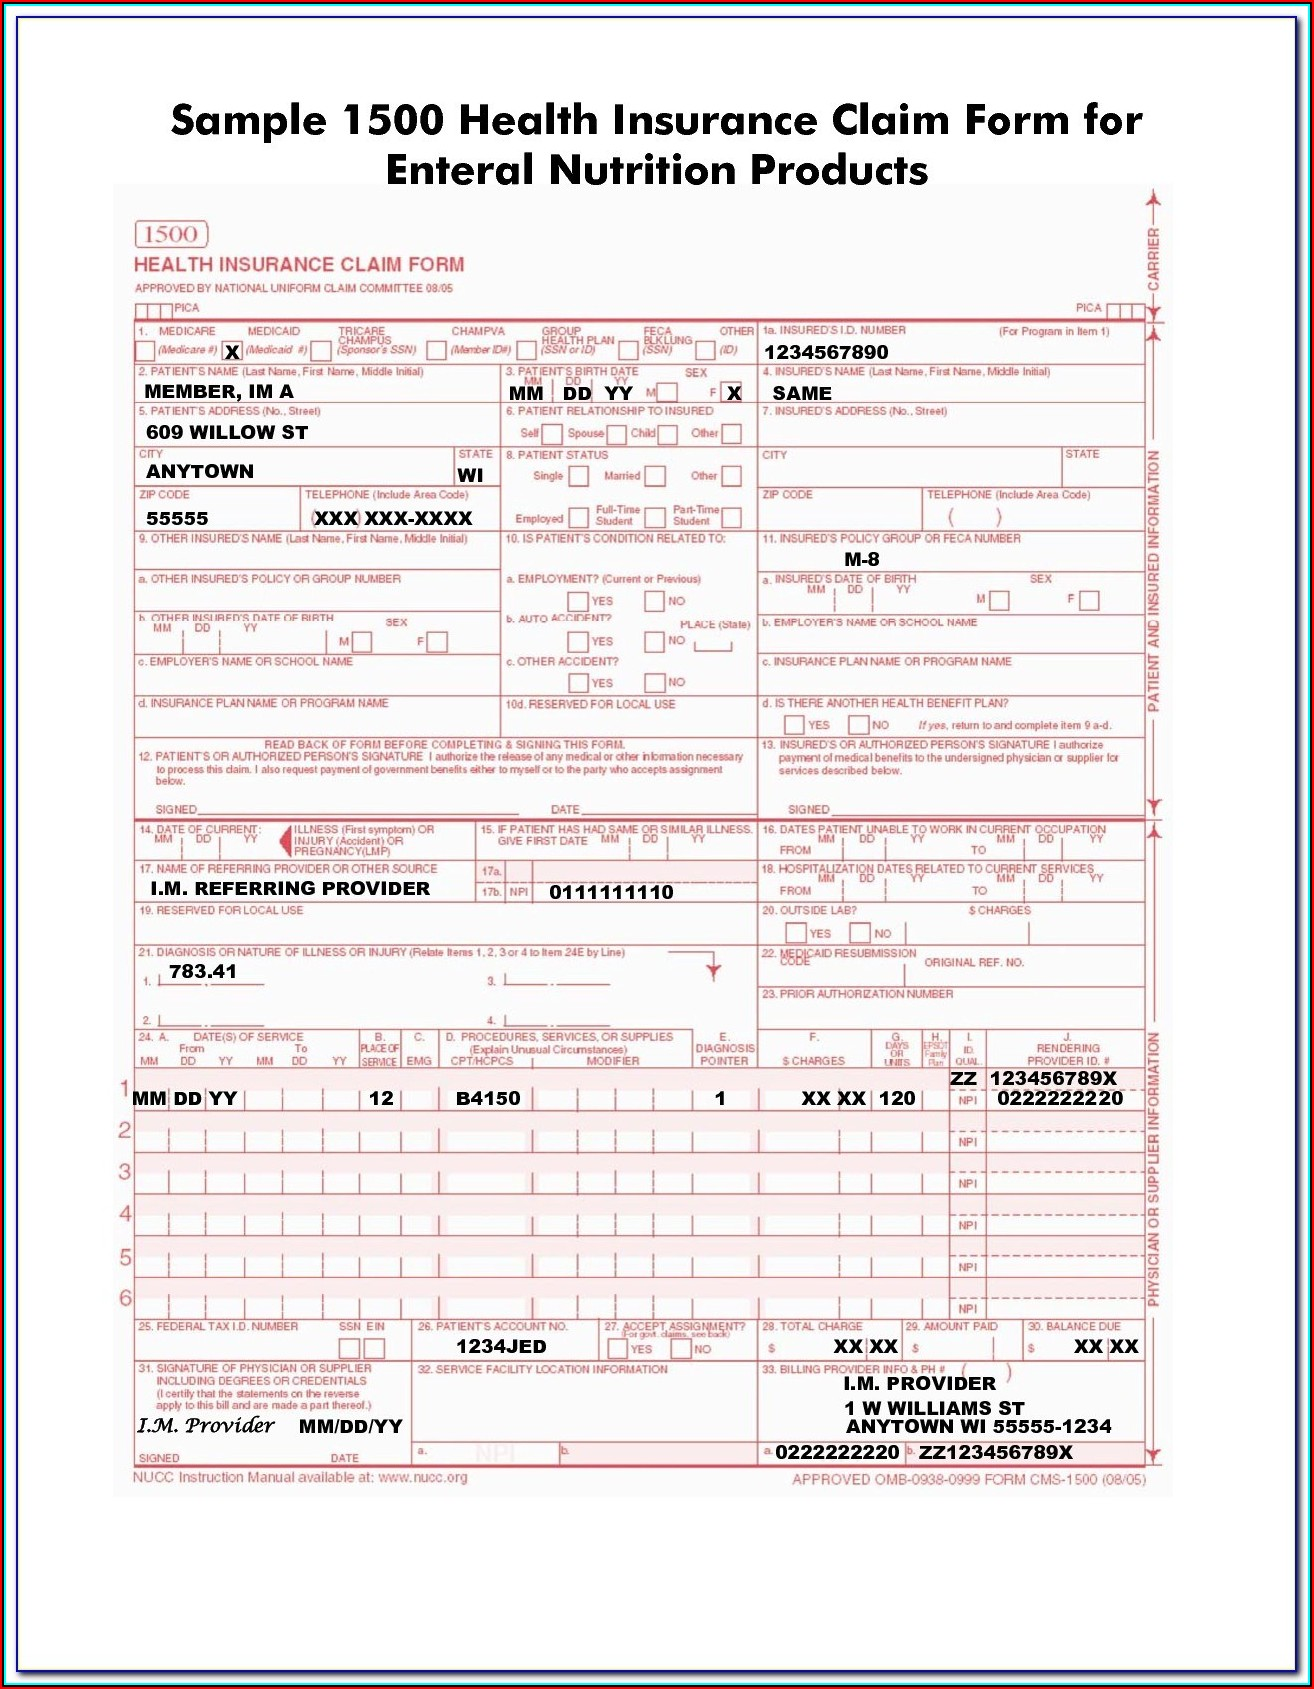 Cms 1500 Form Instructions 2019